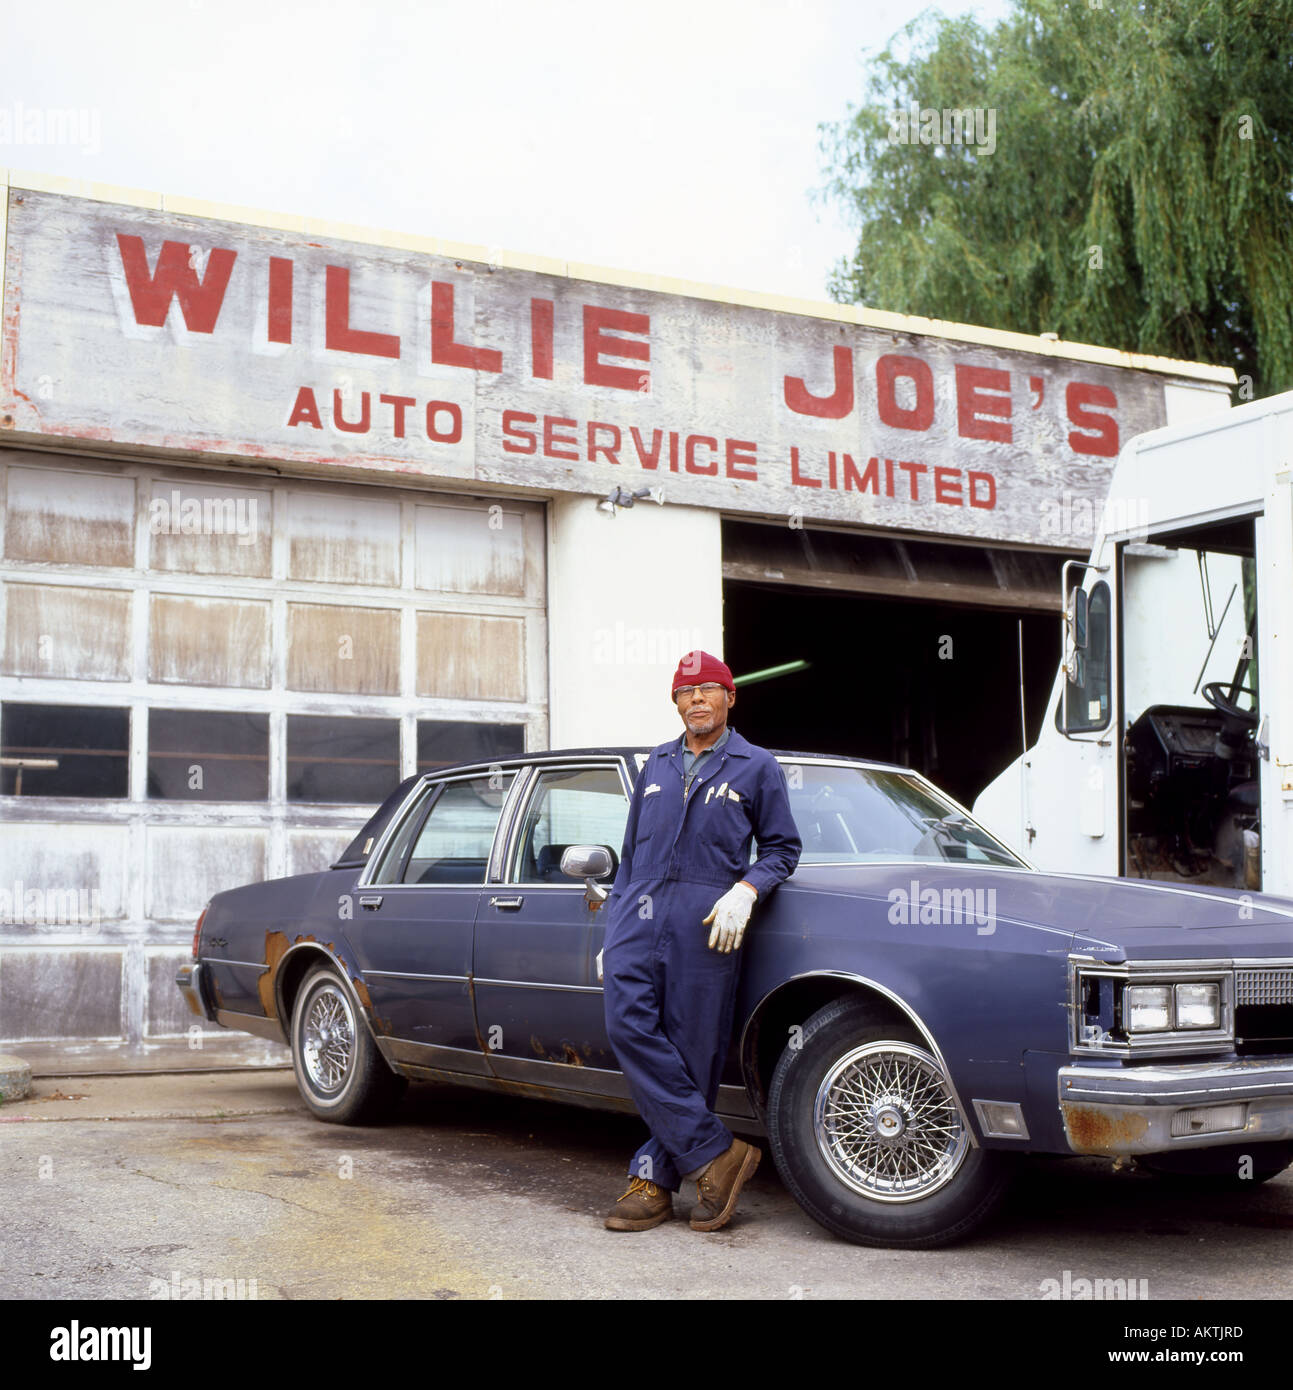 Willie Joes Auto Service Fort Erie, Ontario Canada Stock Photo ...